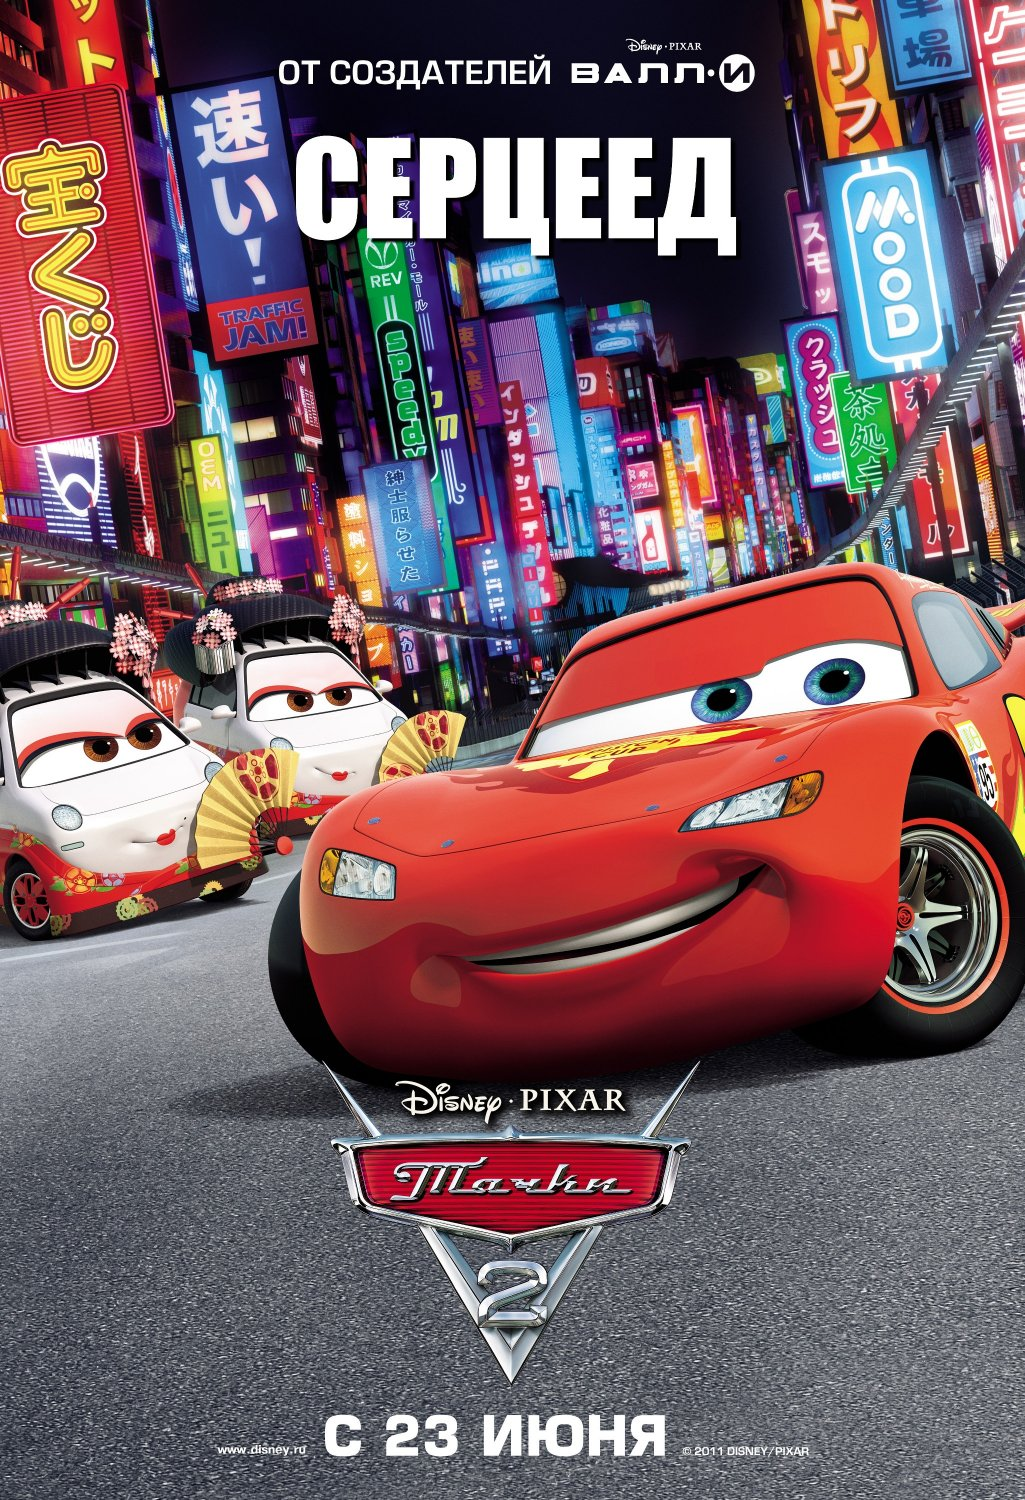 cars poster pixar russian movie disney posters japan soundtrack seven movies update artwork unveiled cars2 reserved rights celebrities games